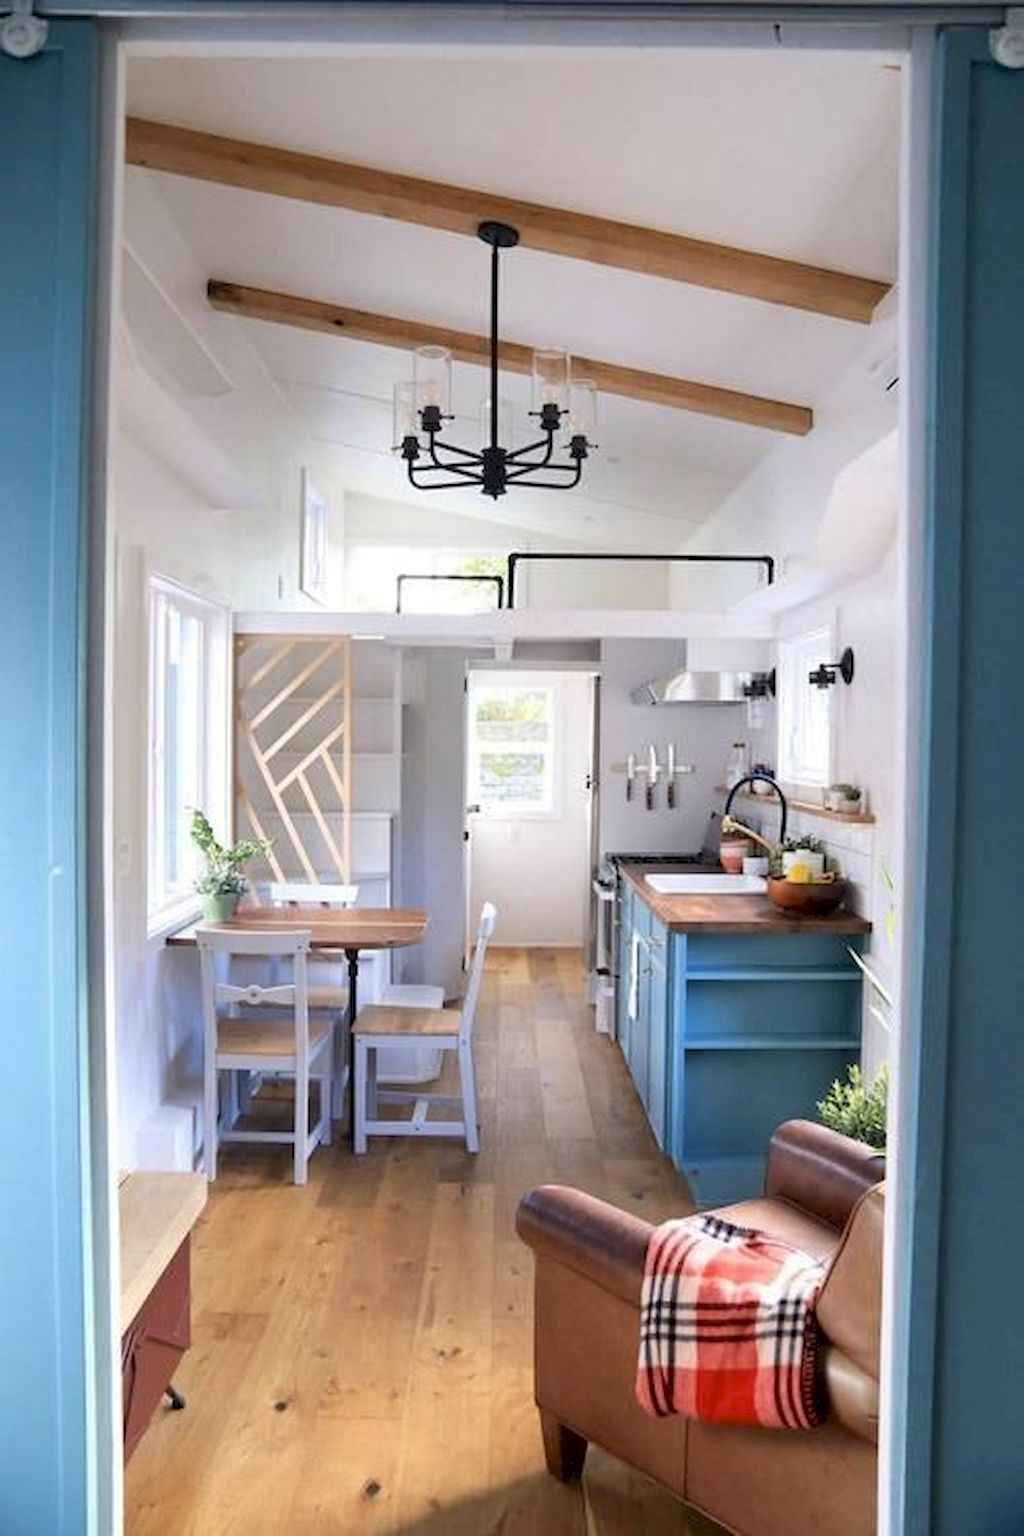 14 Tiny House Kitchen Storage Organization and Tips Ideas